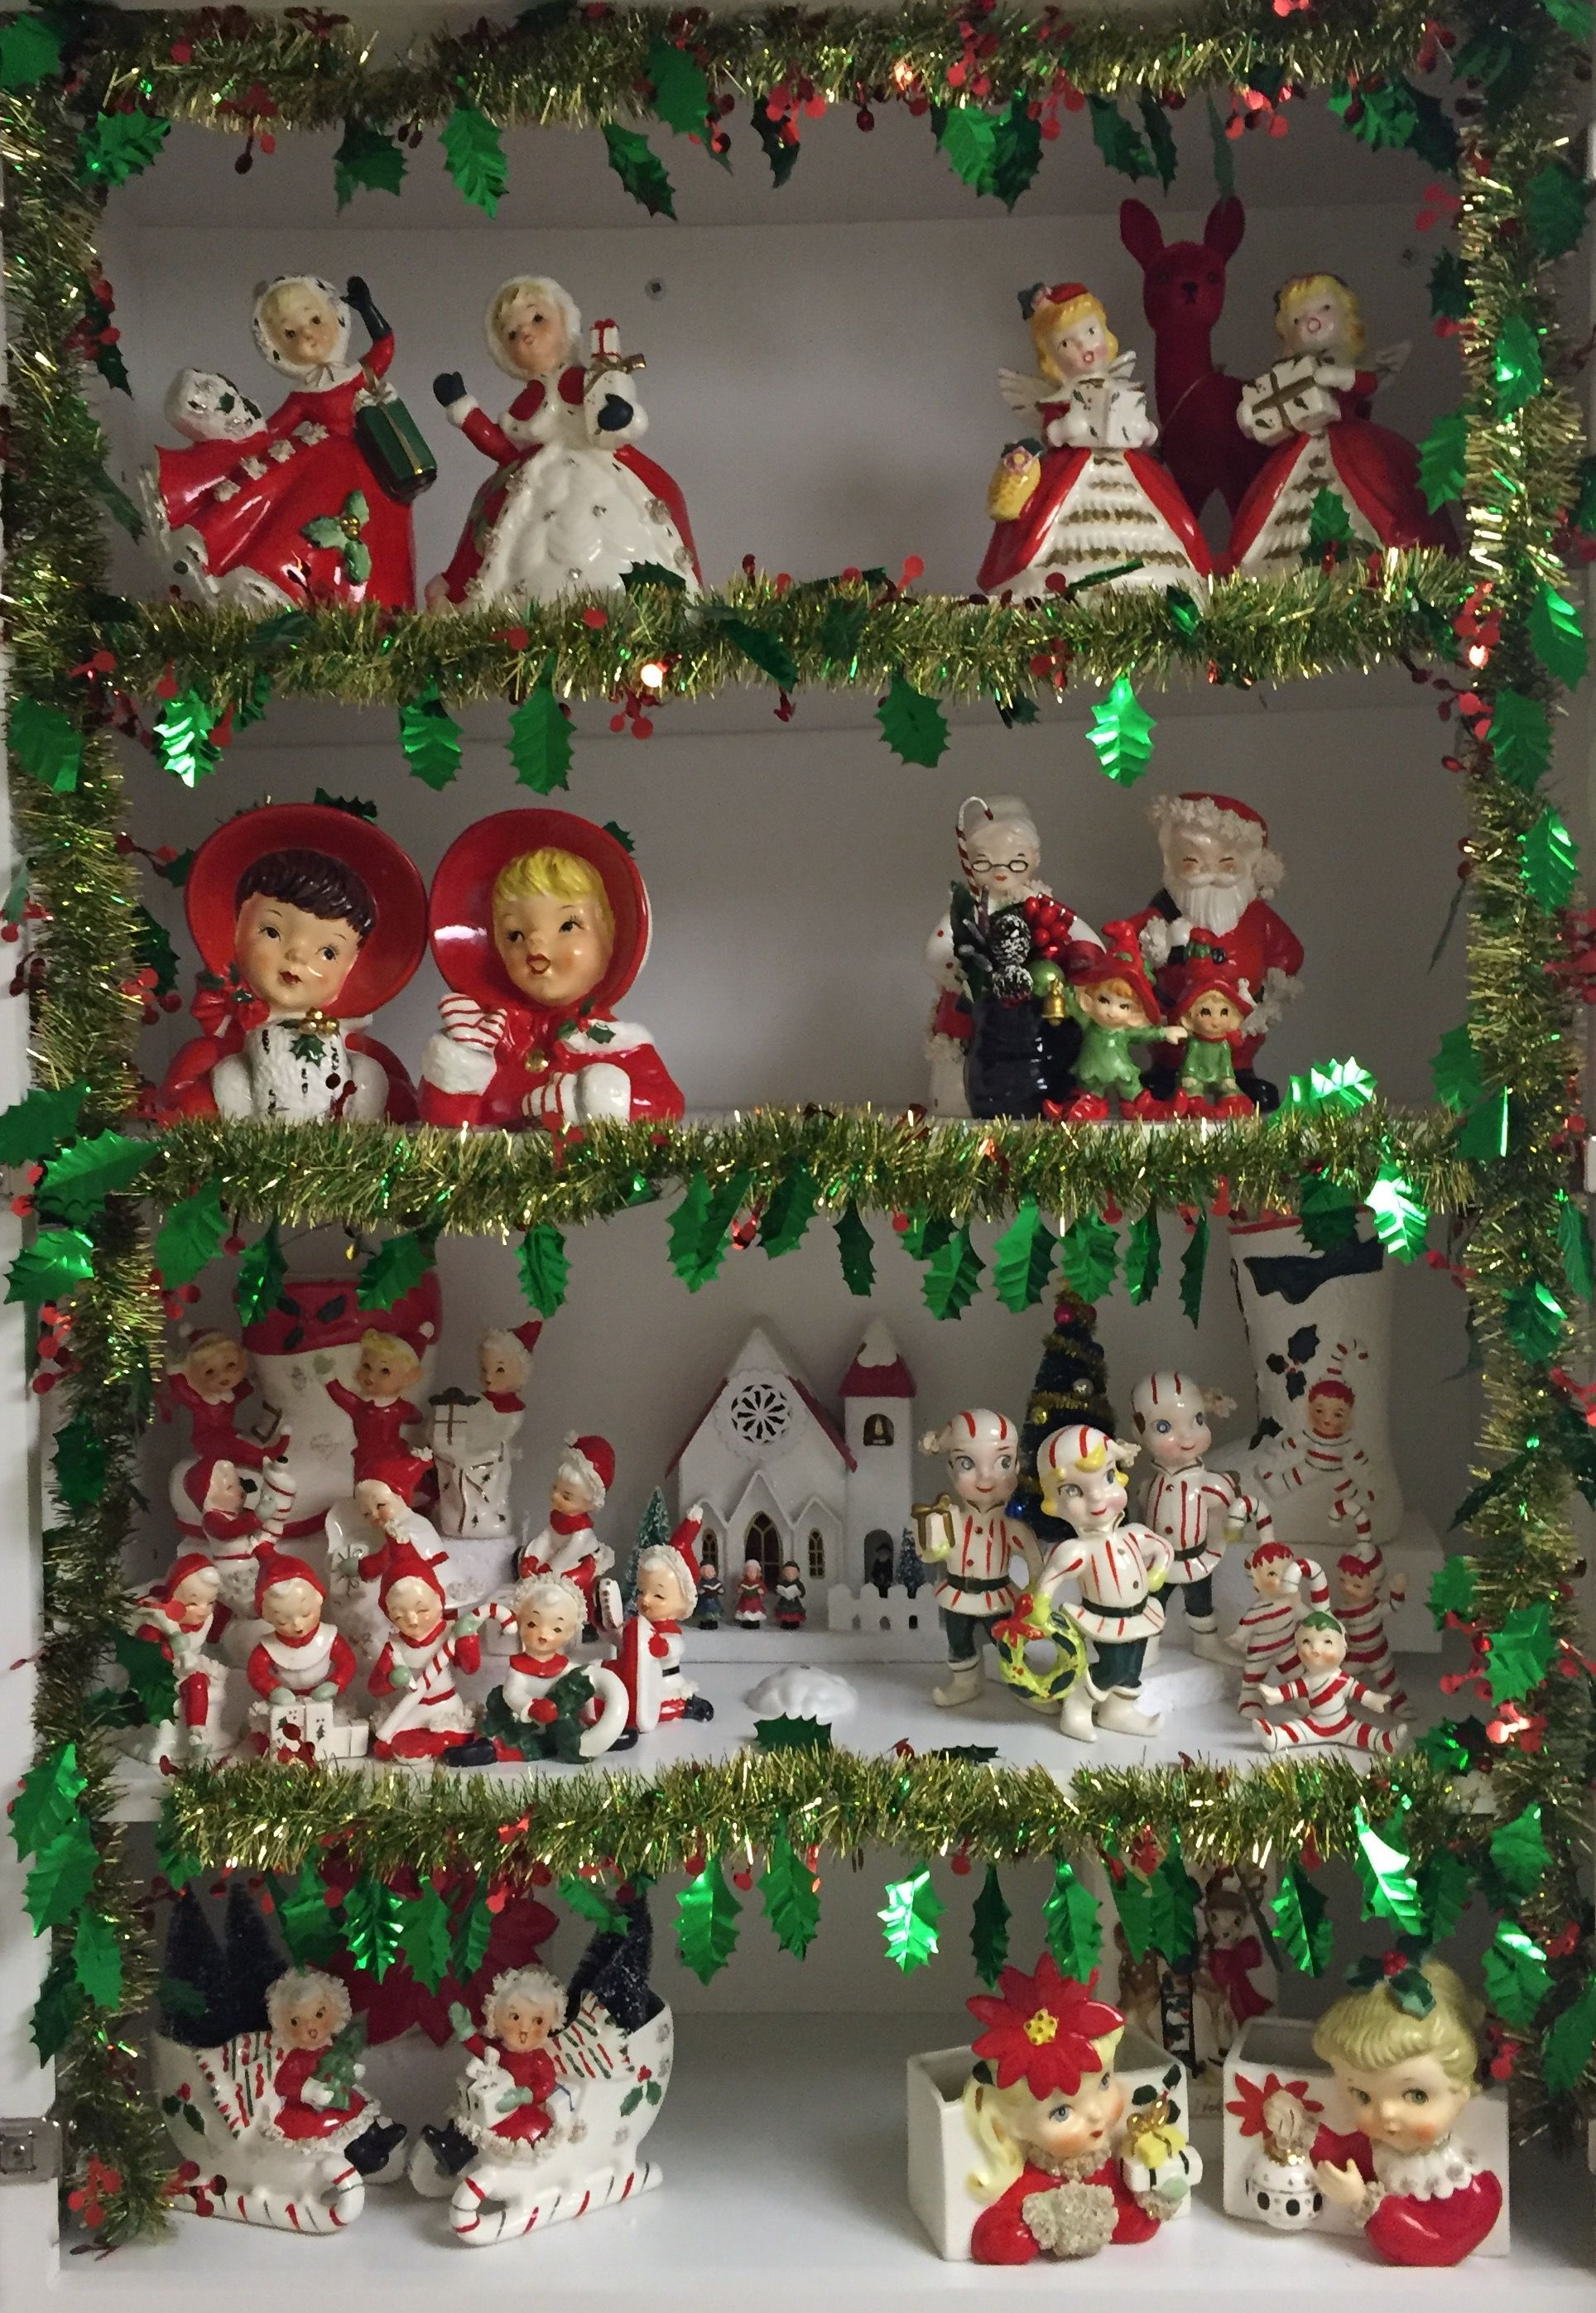 Old Christmas Decorations.Vintage Christmas Figurine Collection Display Old